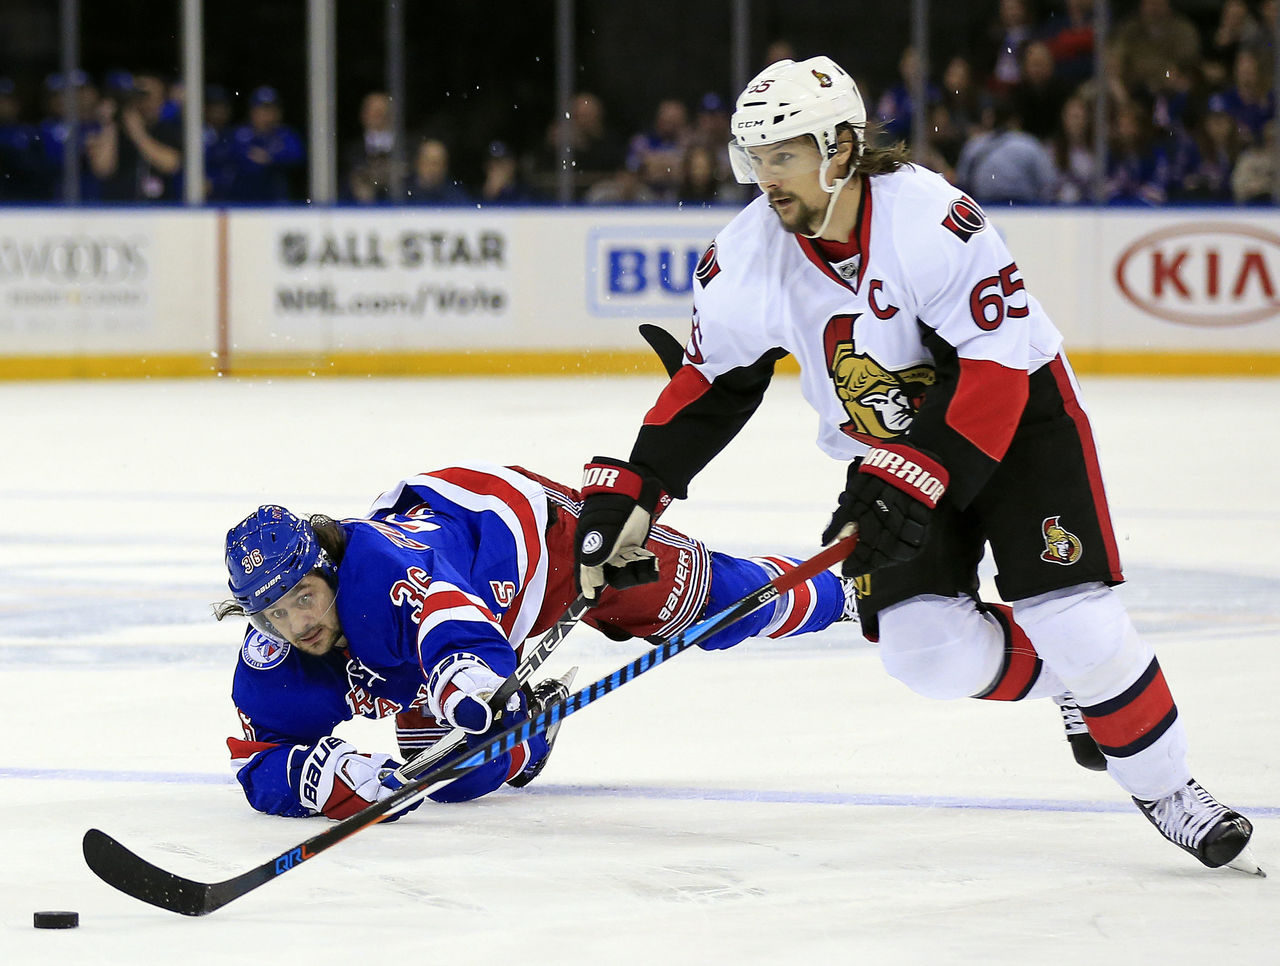 Cropped 2016 12 28t005615z 116120988 nocid rtrmadp 3 nhl ottawa senators at new york rangers